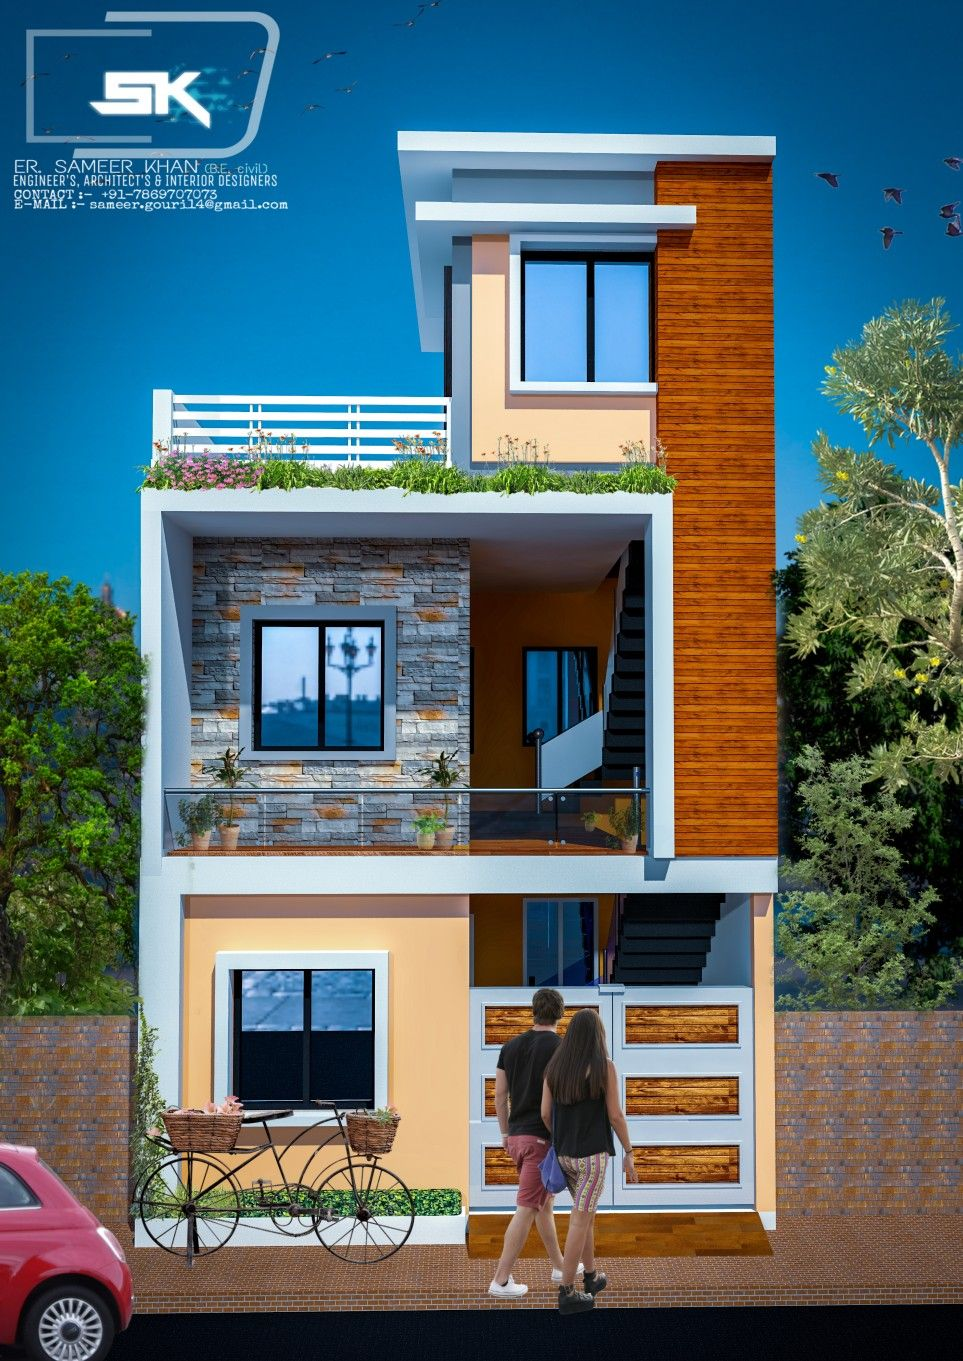 Introducing Indian Modern House Exterior Elevation By Er Sameer Khan In 17 Indianhouse Small House Elevation Design House Front Design Modern House Exterior